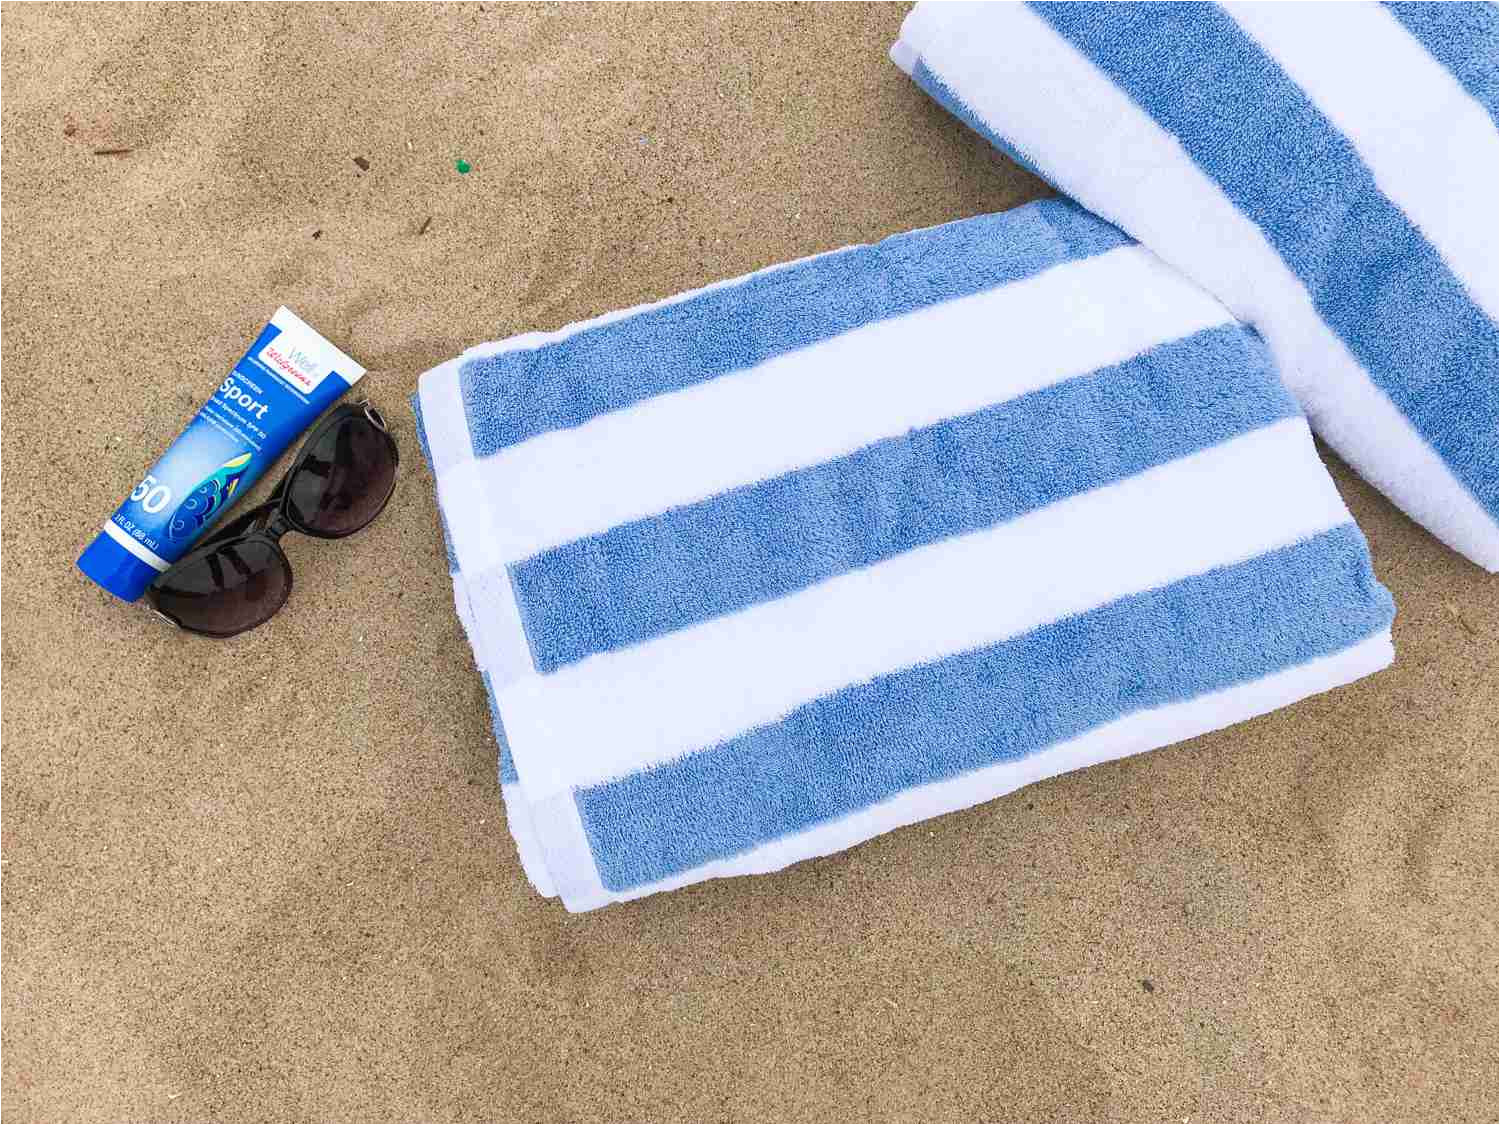 this towel s biggest pluses according to our testers were its reasonable price its softness and the fact that it absorbs water quickly